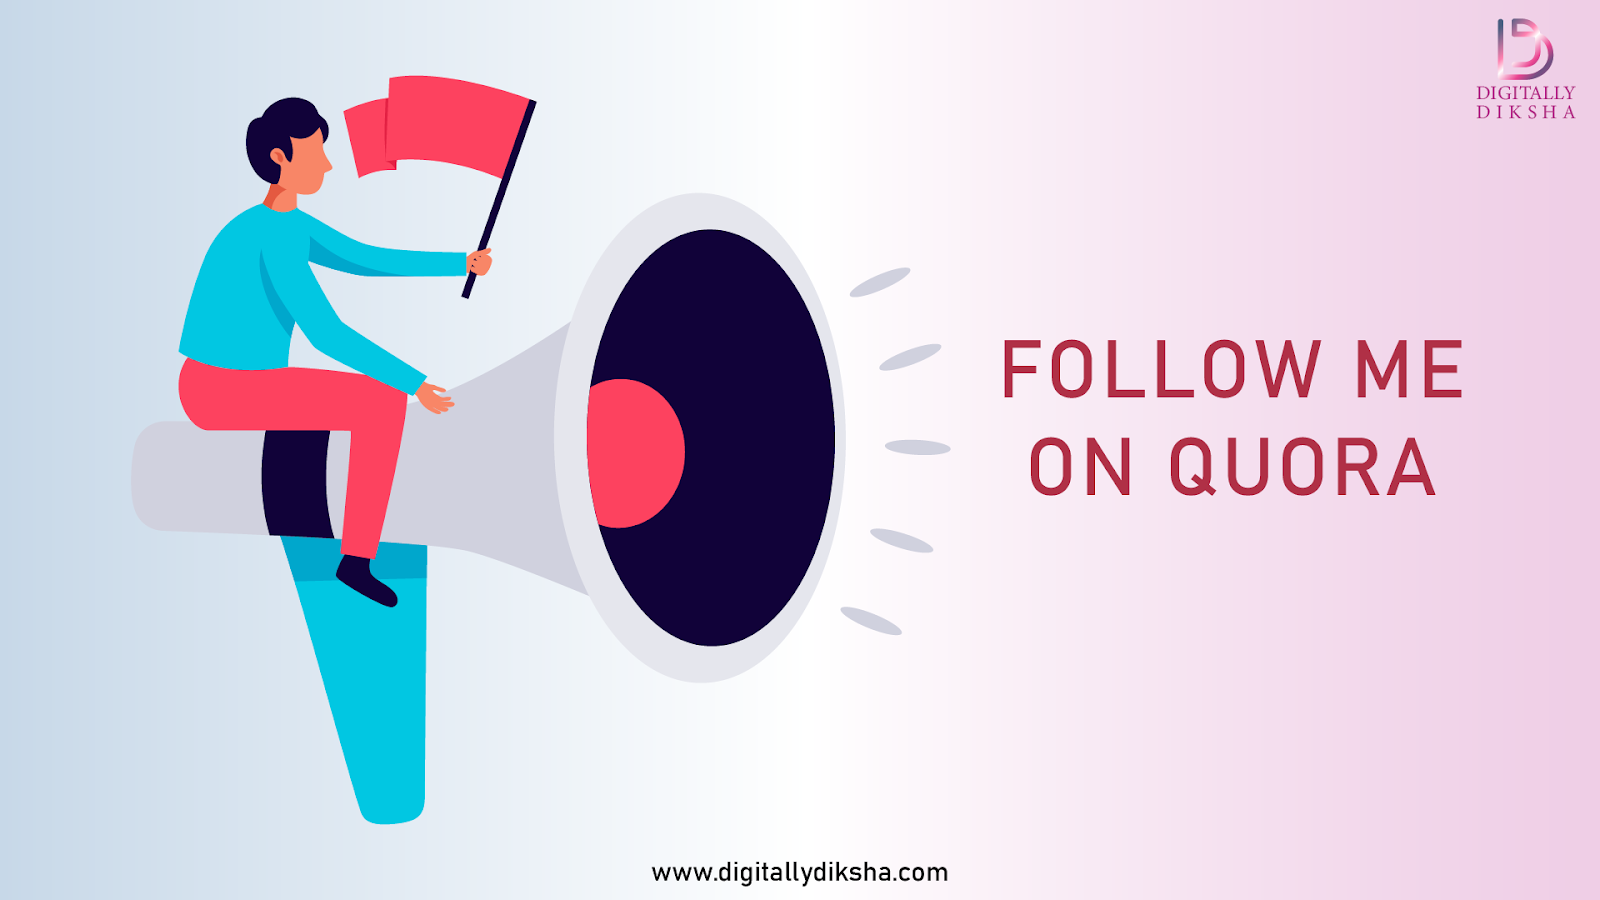 Ask people to follow you on quora for quora marketing